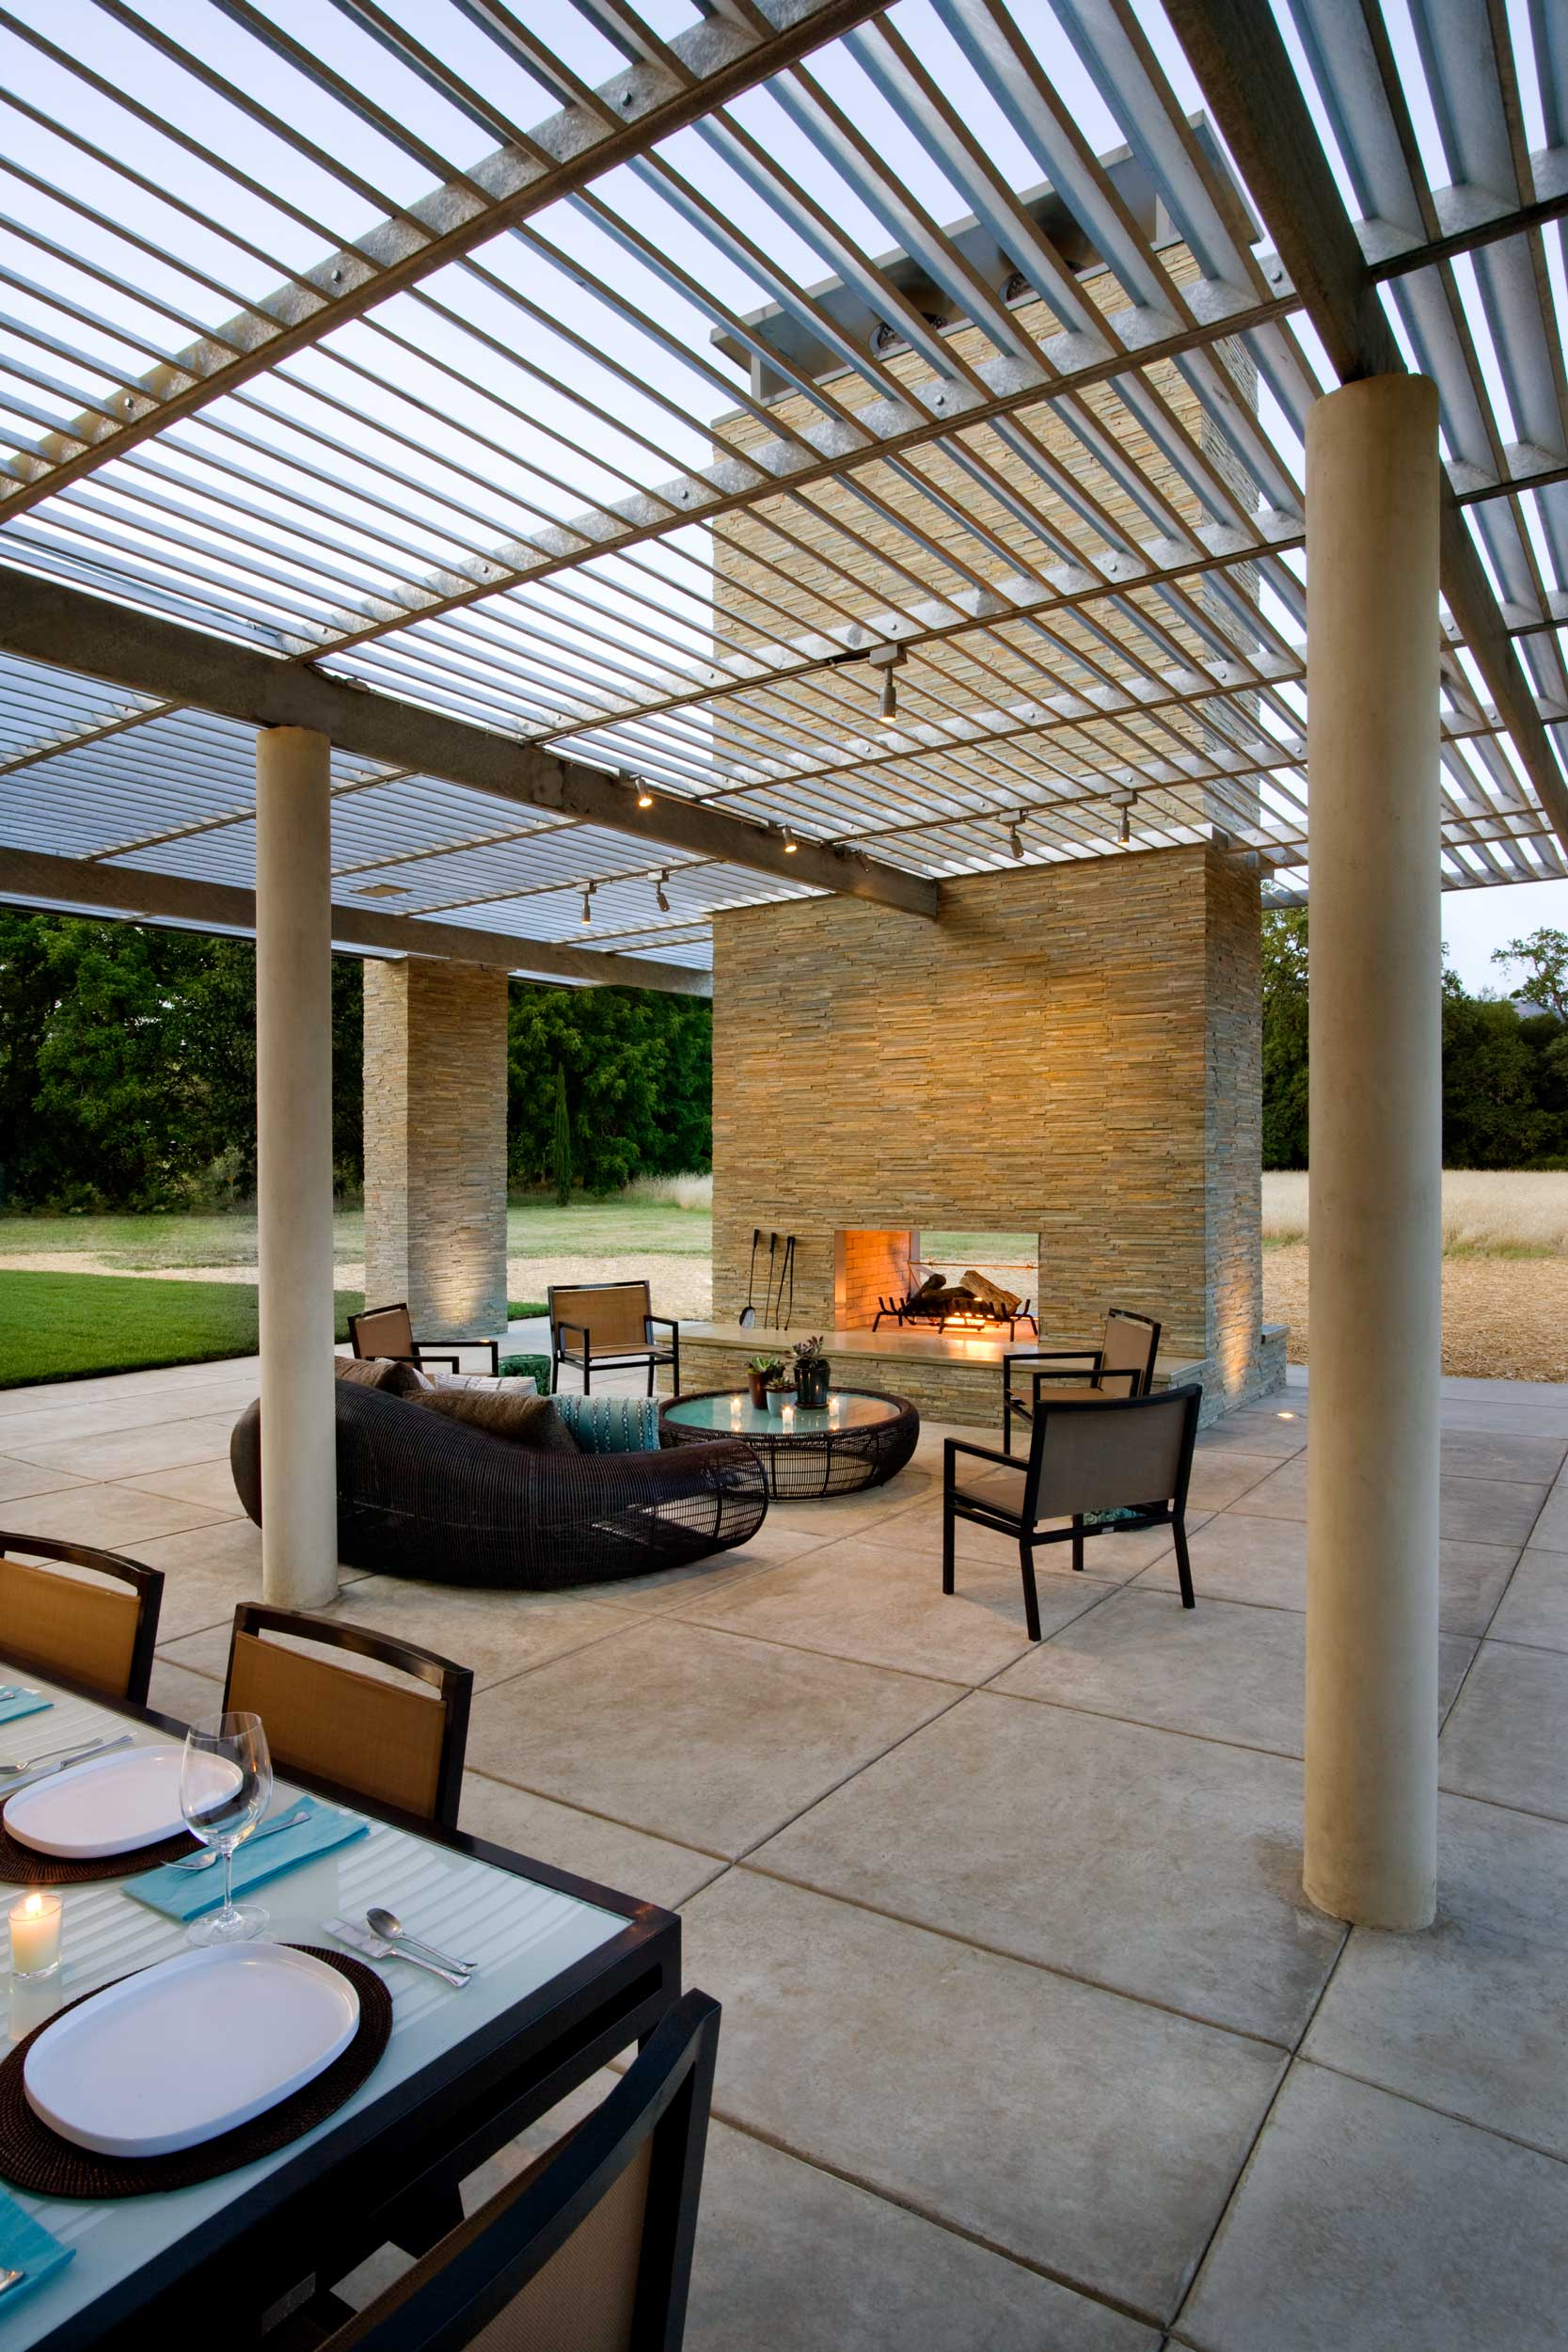 View of Pool House Patio and Outdoor Fireplace